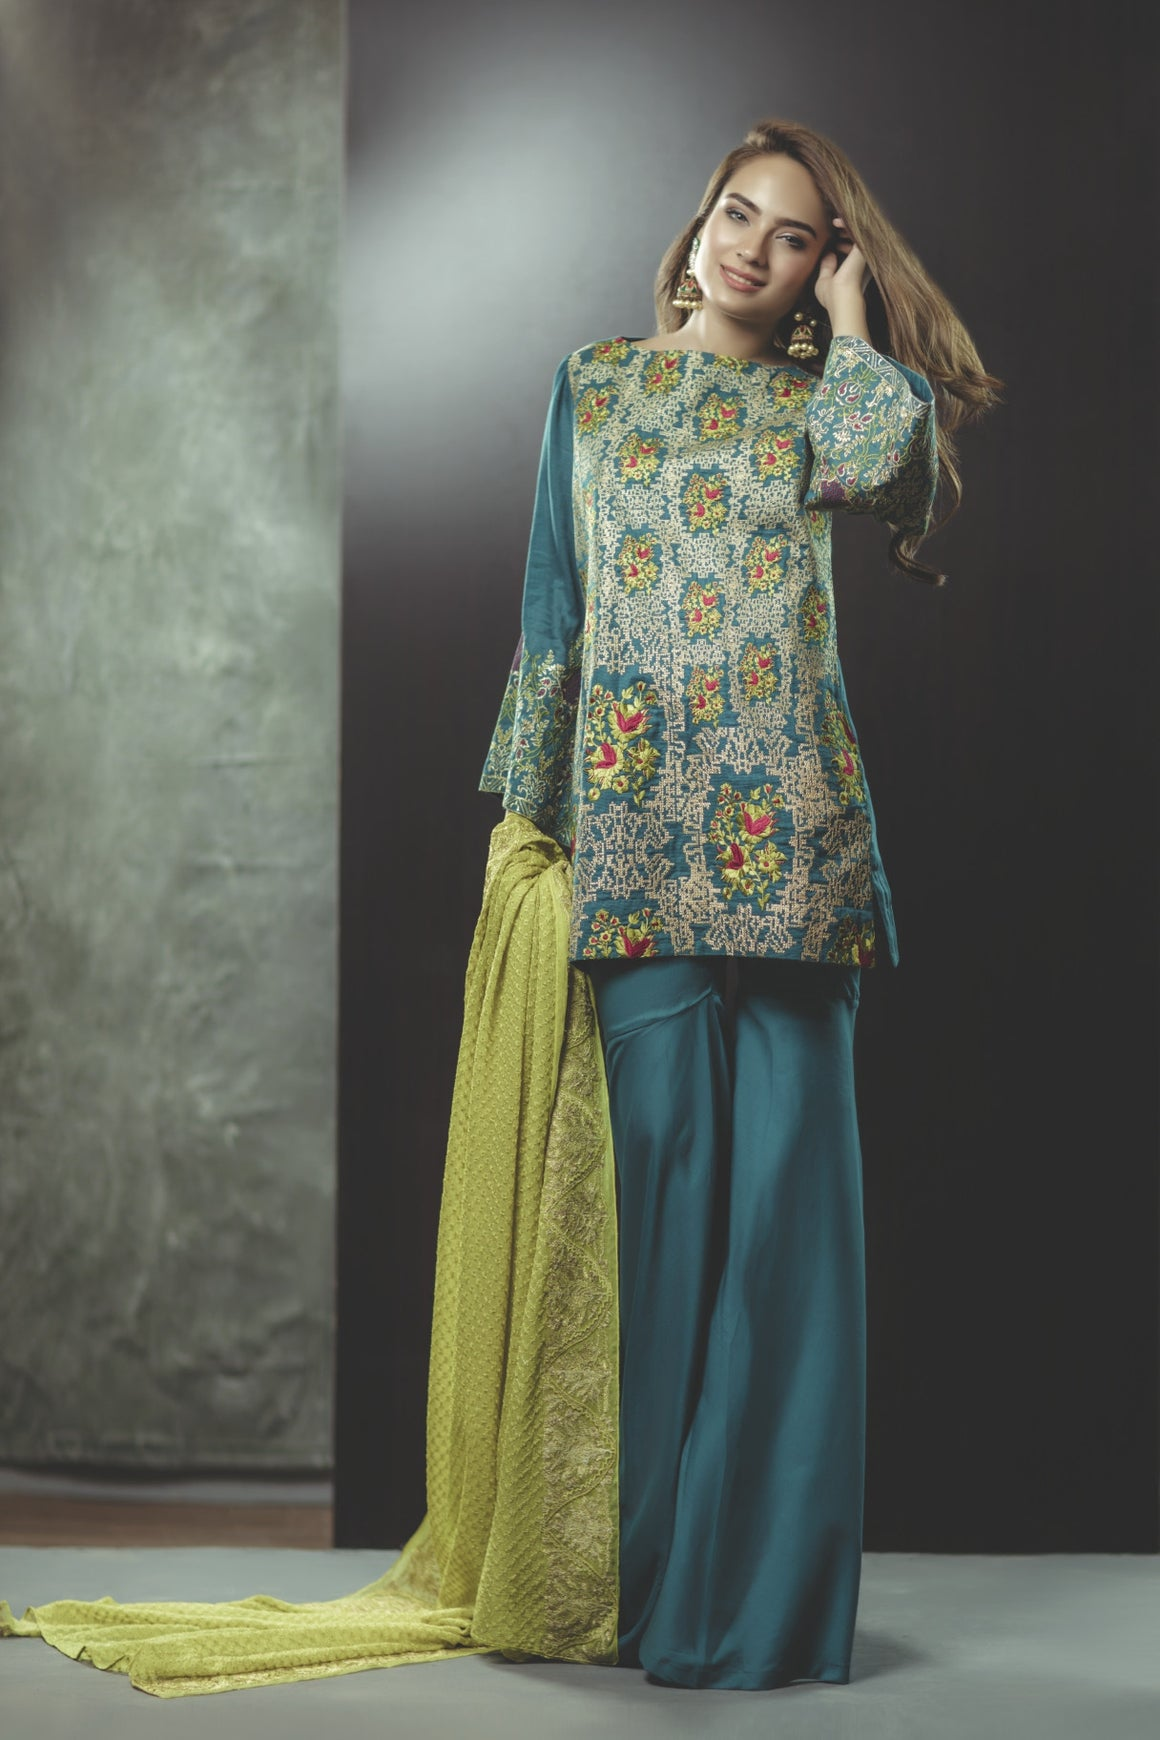 Alkaram Studio - Citron Teal Cotton Net Shirt & Trousers With Chiffon Dupatta Clearance Sale